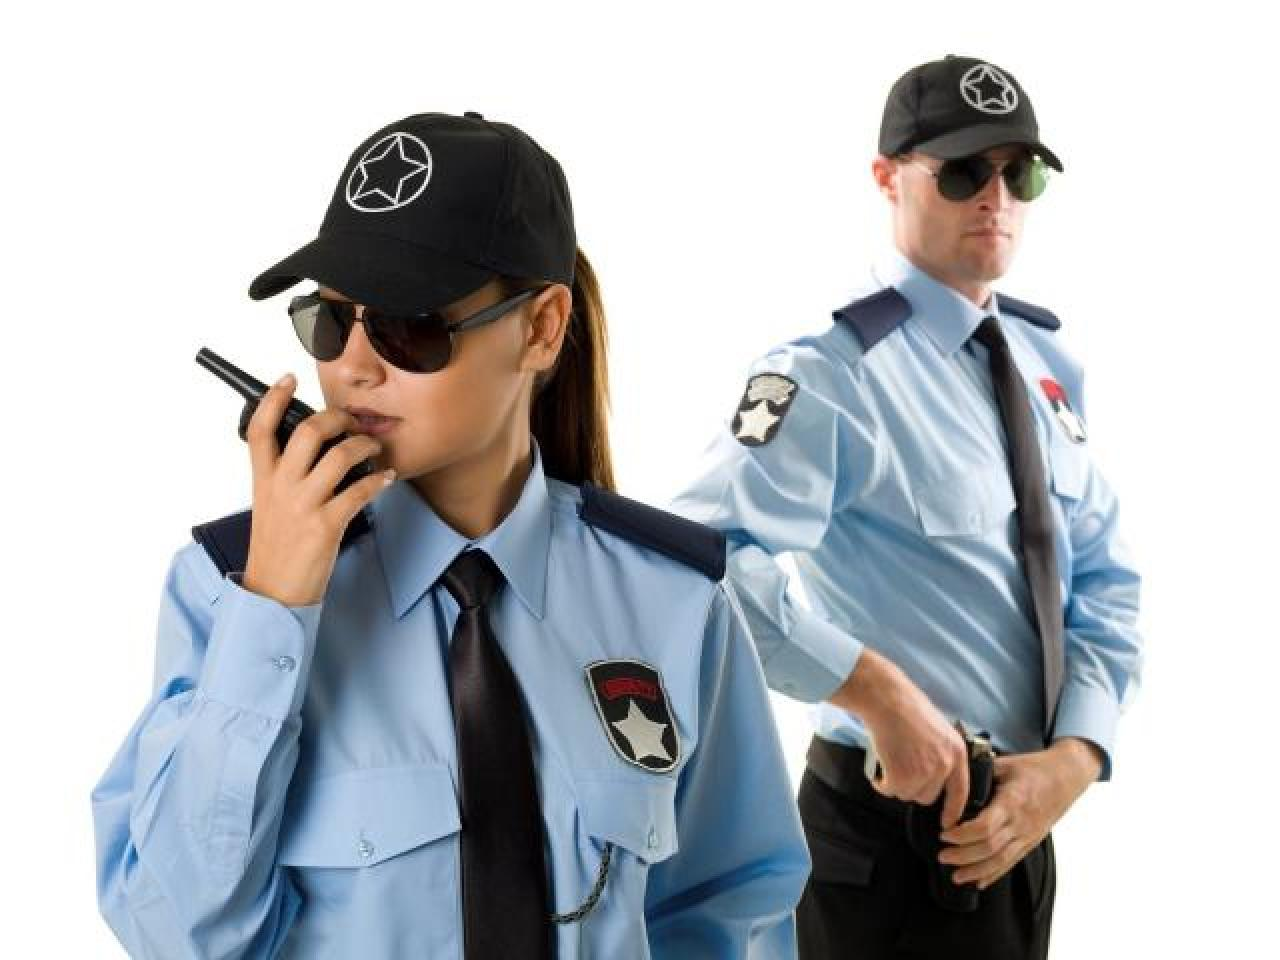 Security officer course & job - 2